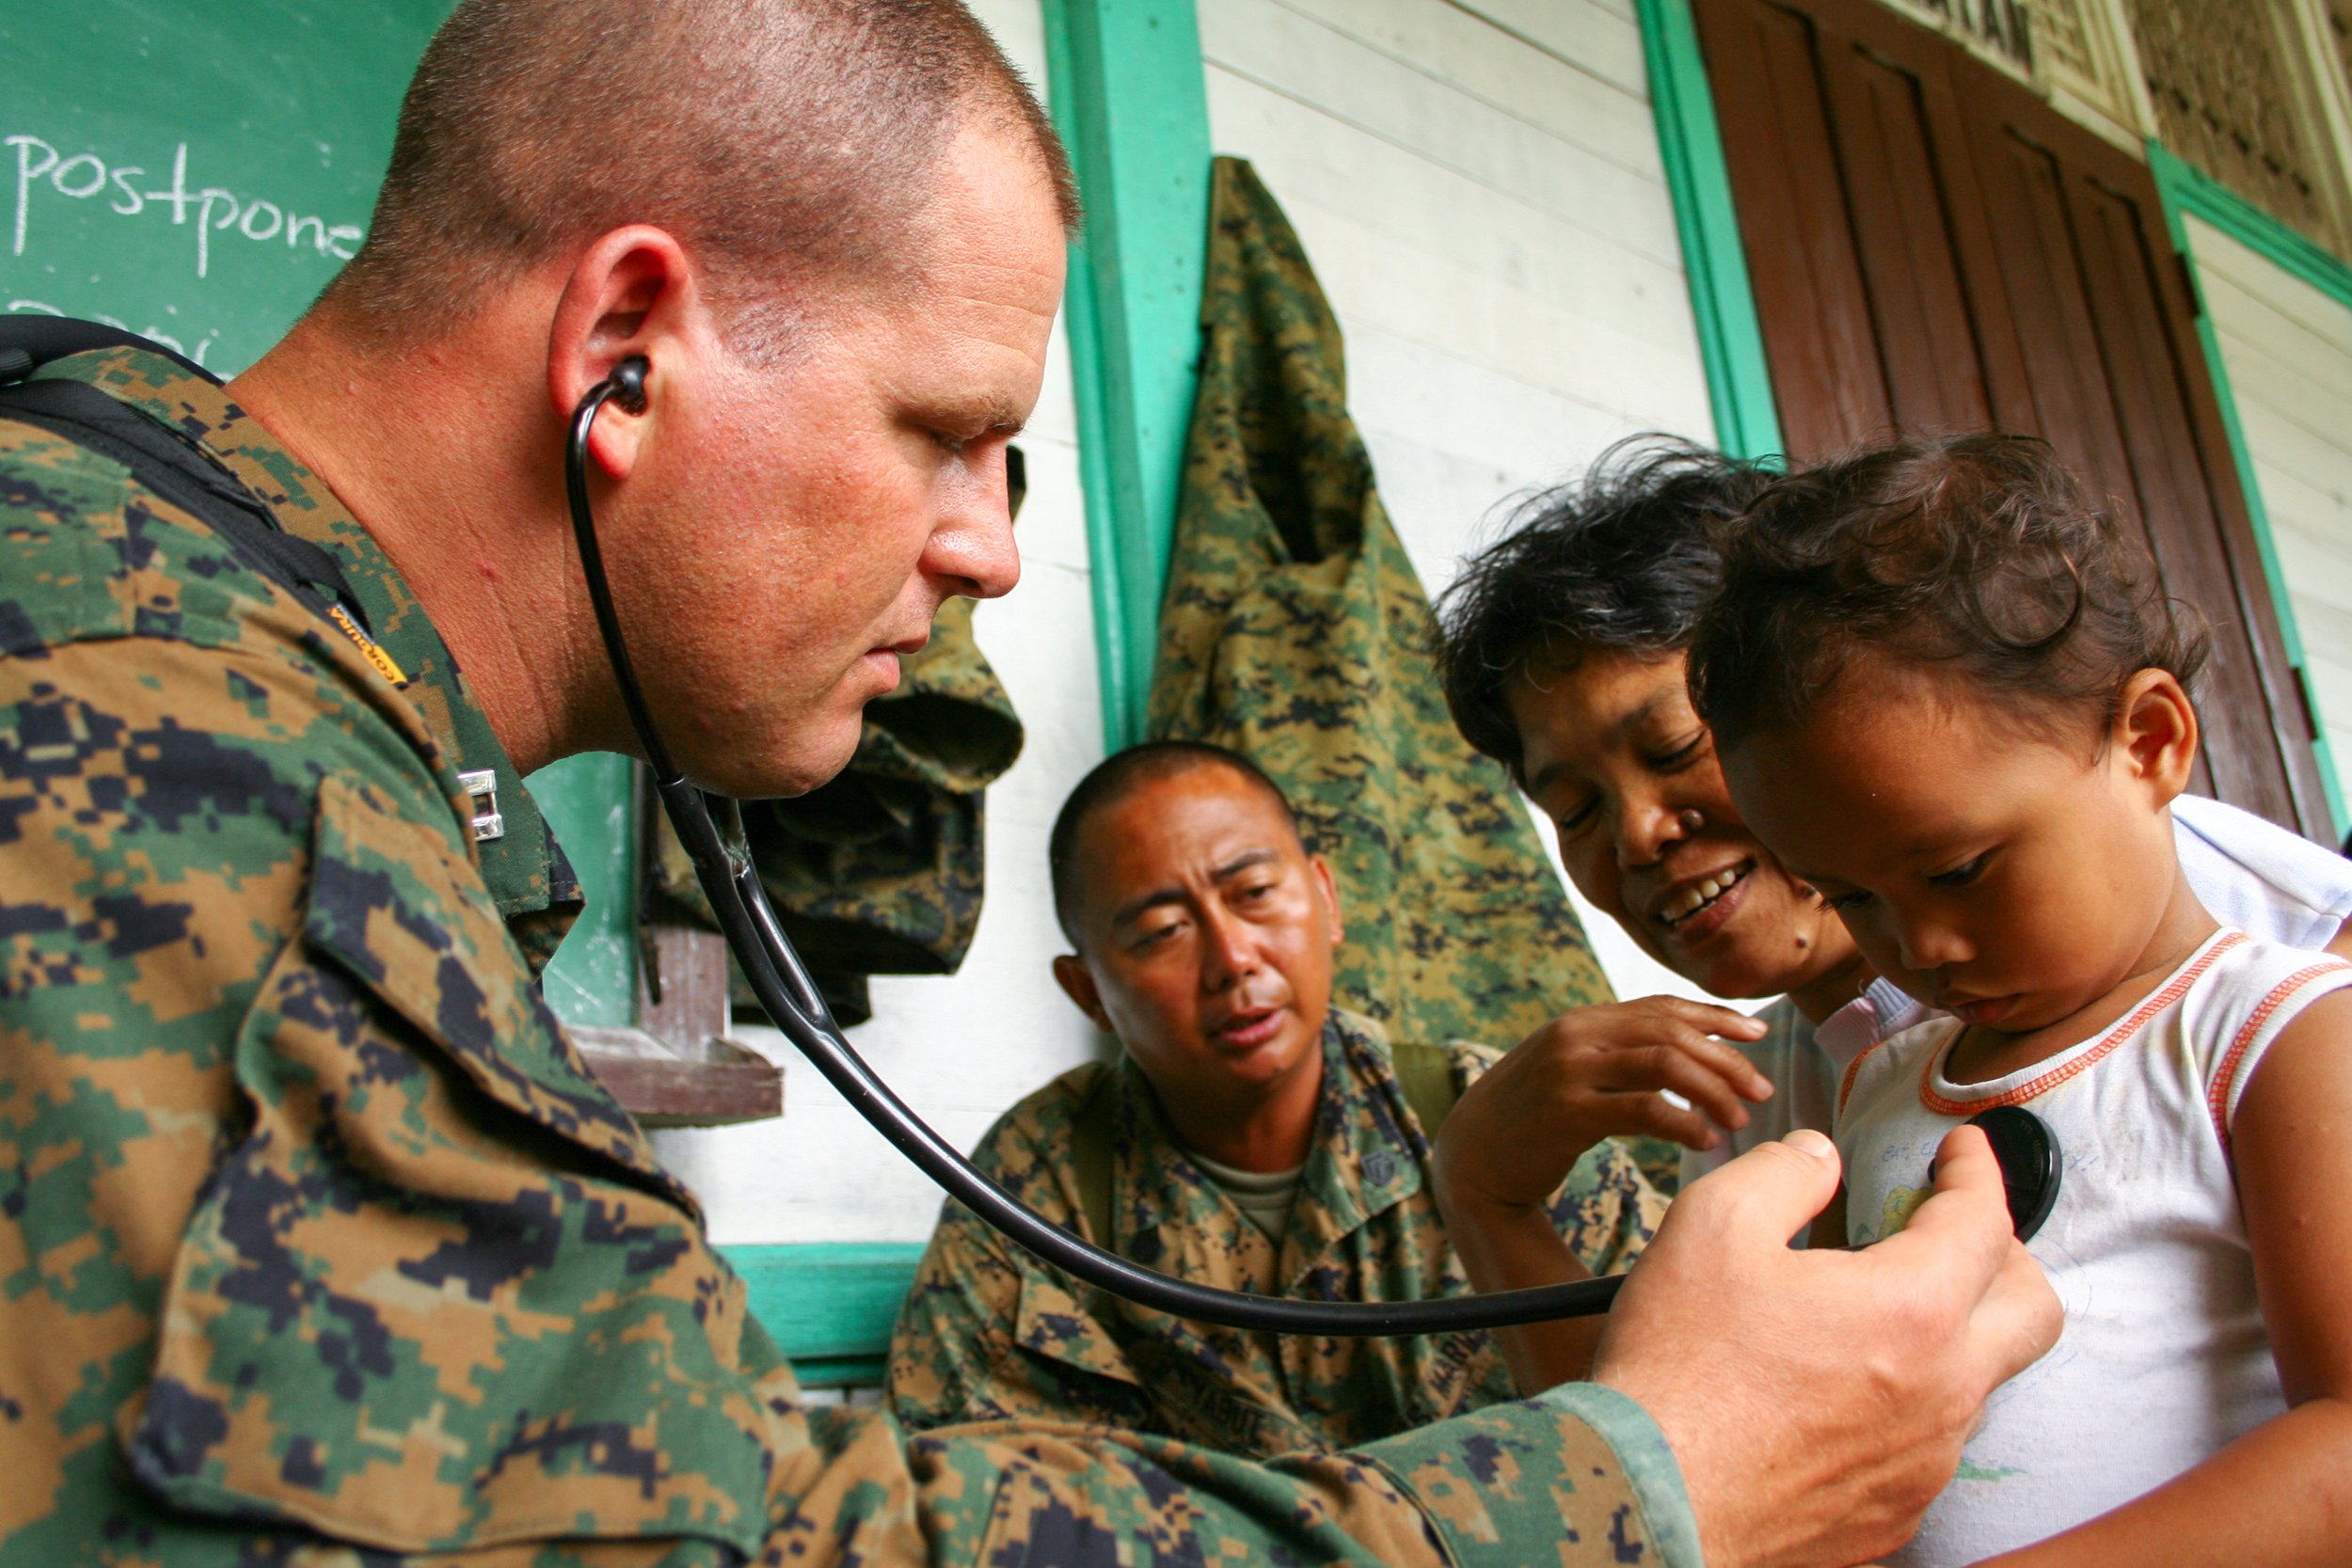 A U.S. Navy doctor performs a check-up on a young Filipino girl at the orphanage in Saint Bernard, Leyte, Philippines.